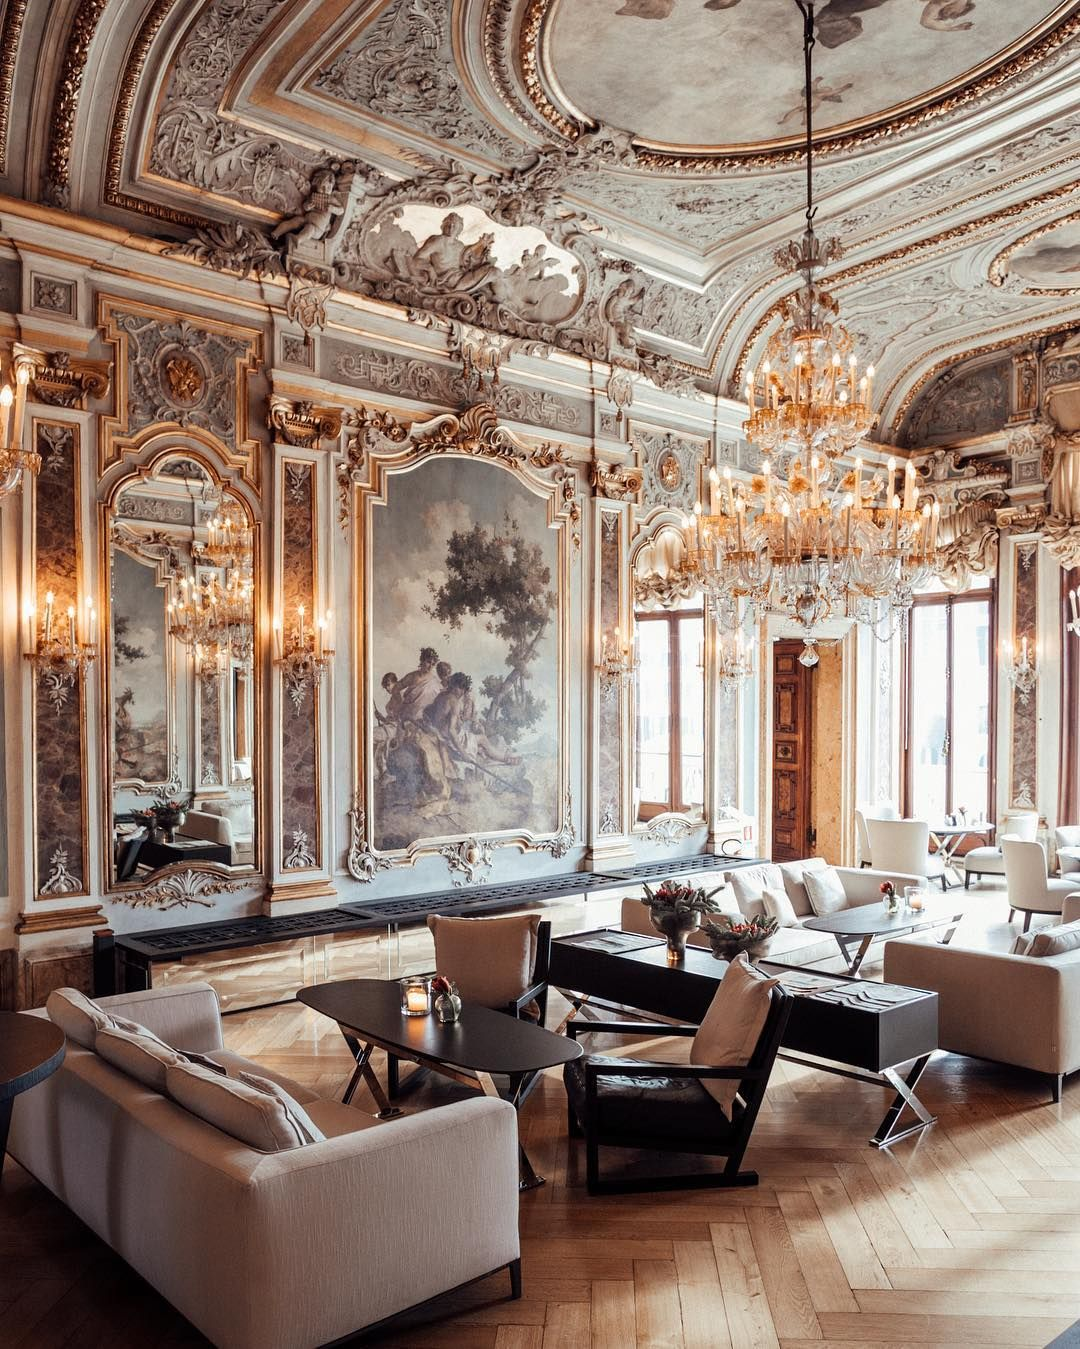 Breakfast Room In Hotel Aman Venice Via David Diedert Home